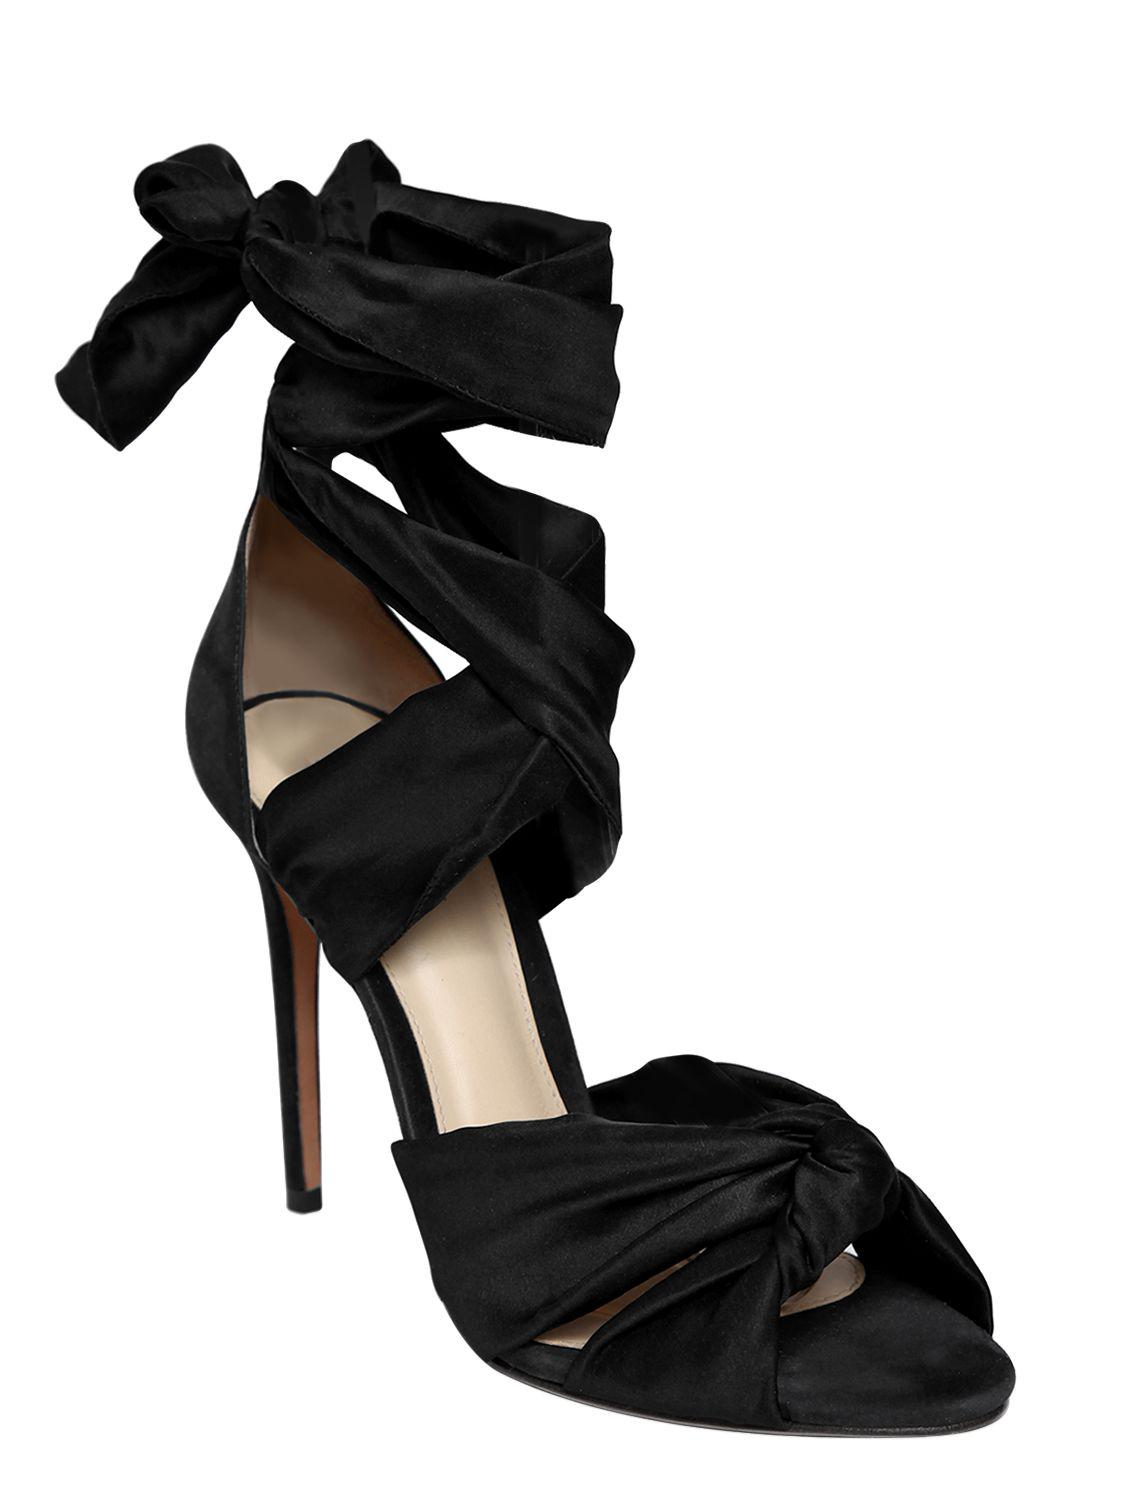 ALEXANDRE BIRMAN 100MM KATHERINE SATIN SANDALS 7qTPgaBsY